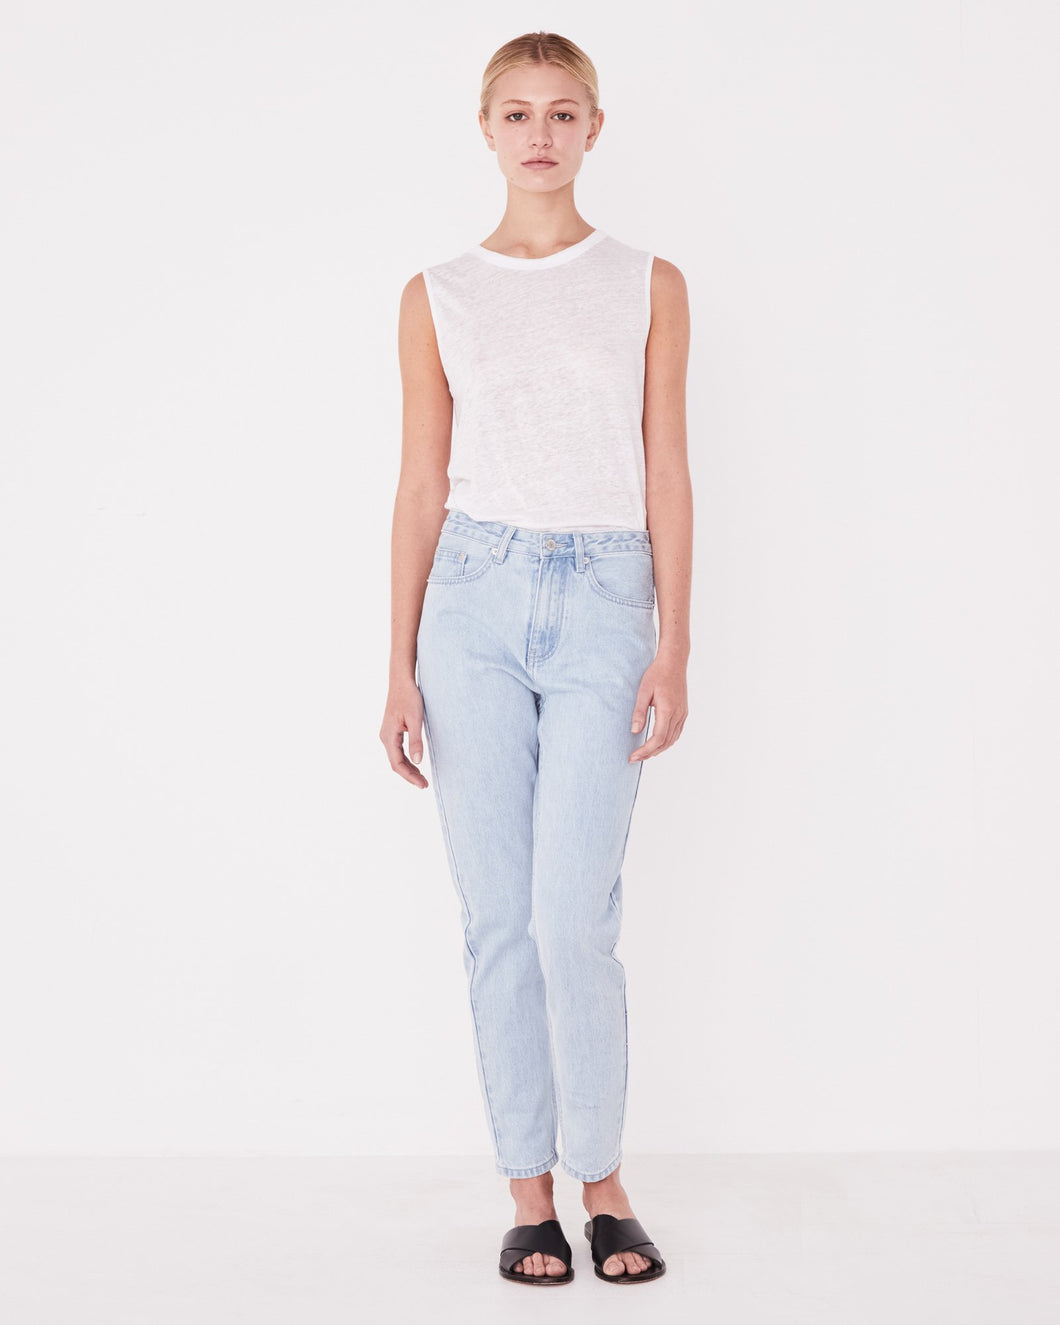 High Waist Rigid Jean- Available in Vintage White & Pacific Blue